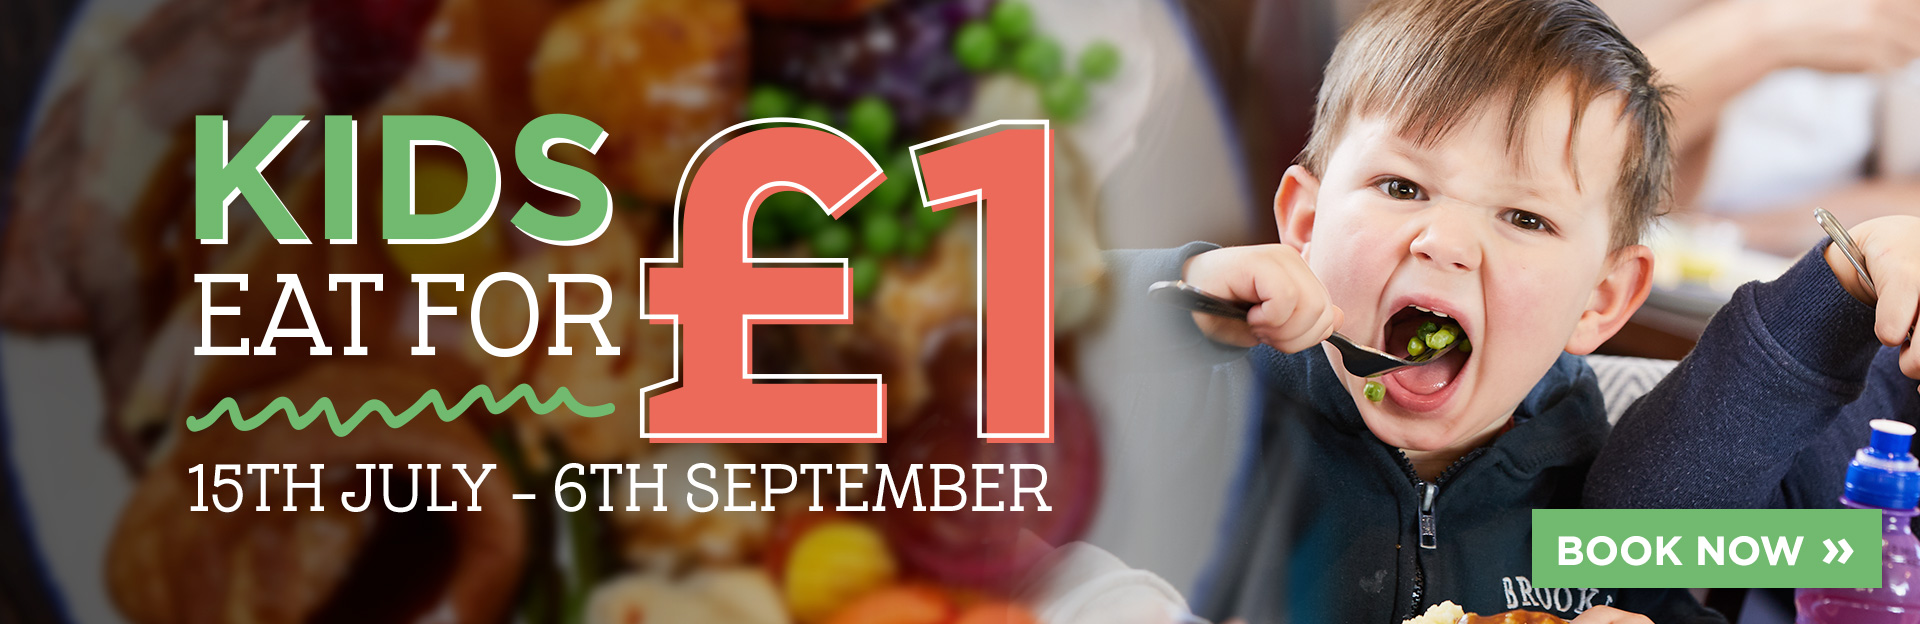 Kids eat for £1 at The White Swan